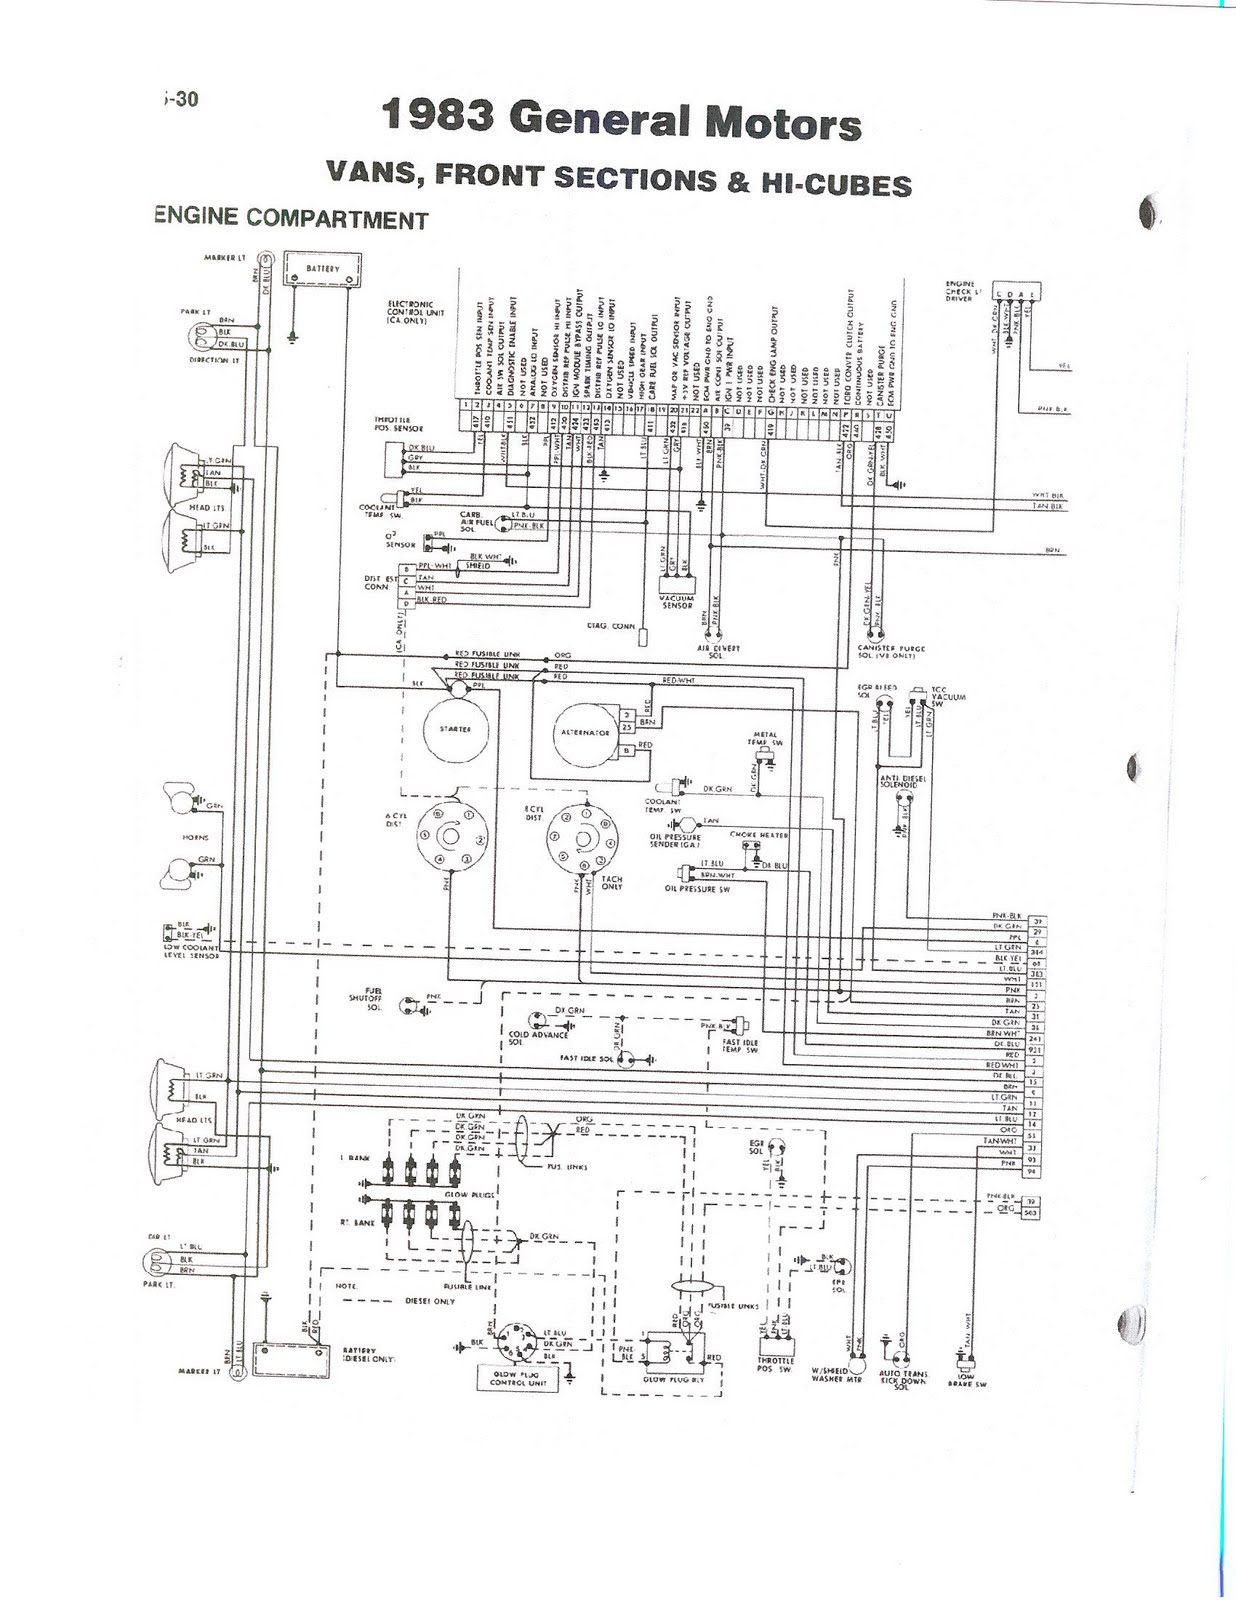 1983 Cadillac Engine Wiring Diragram from 2.bp.blogspot.com